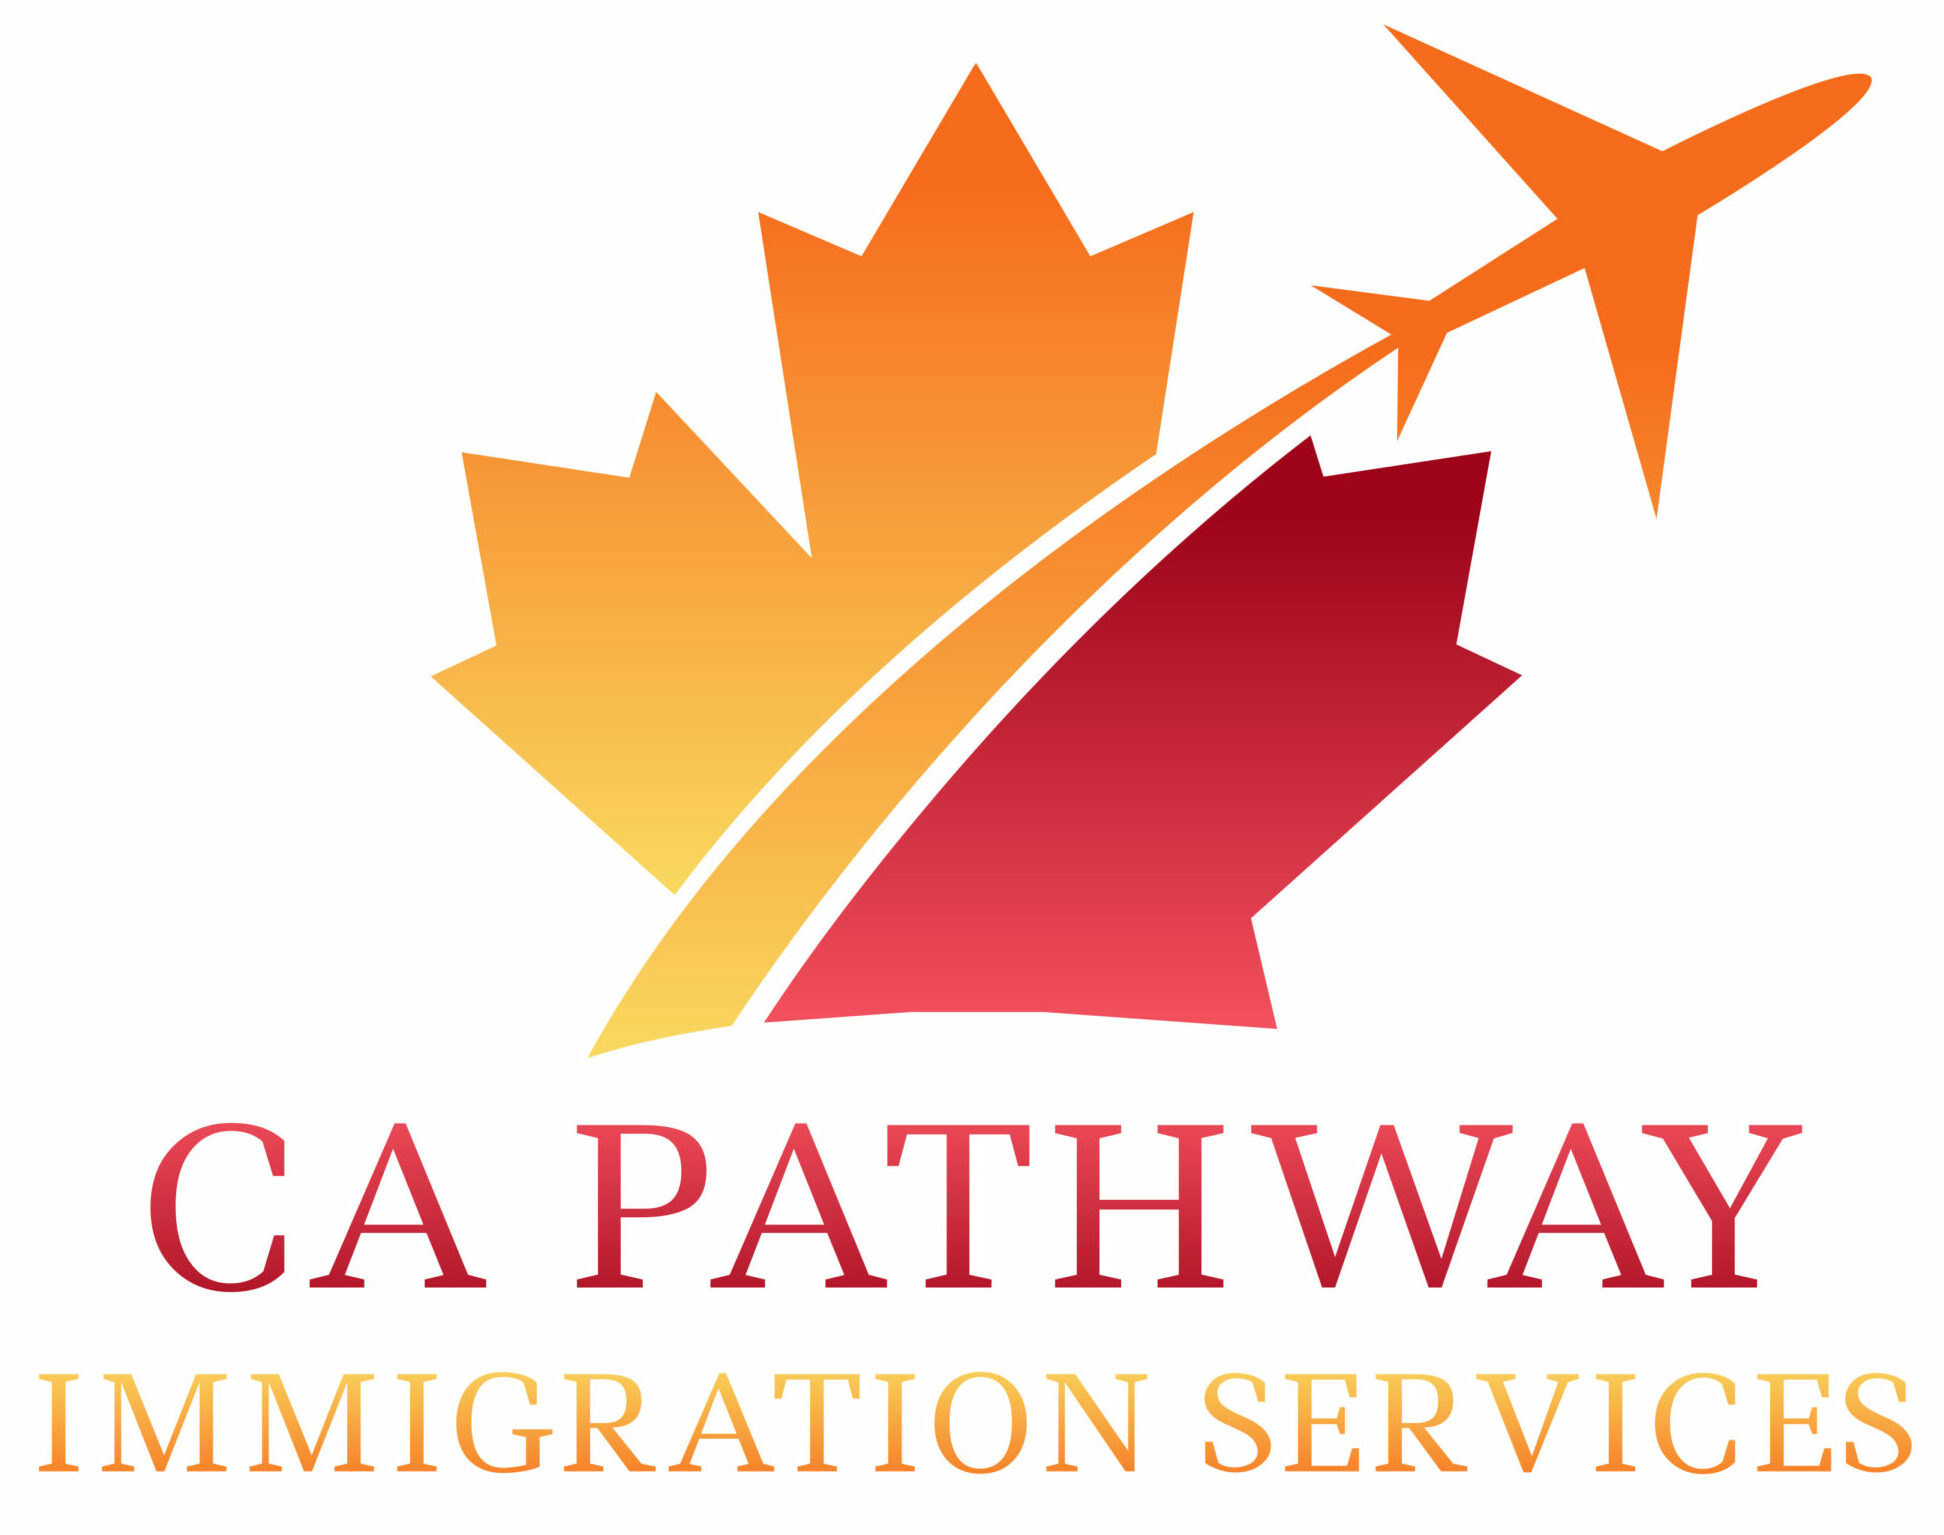 CA Pathway Immigration Services